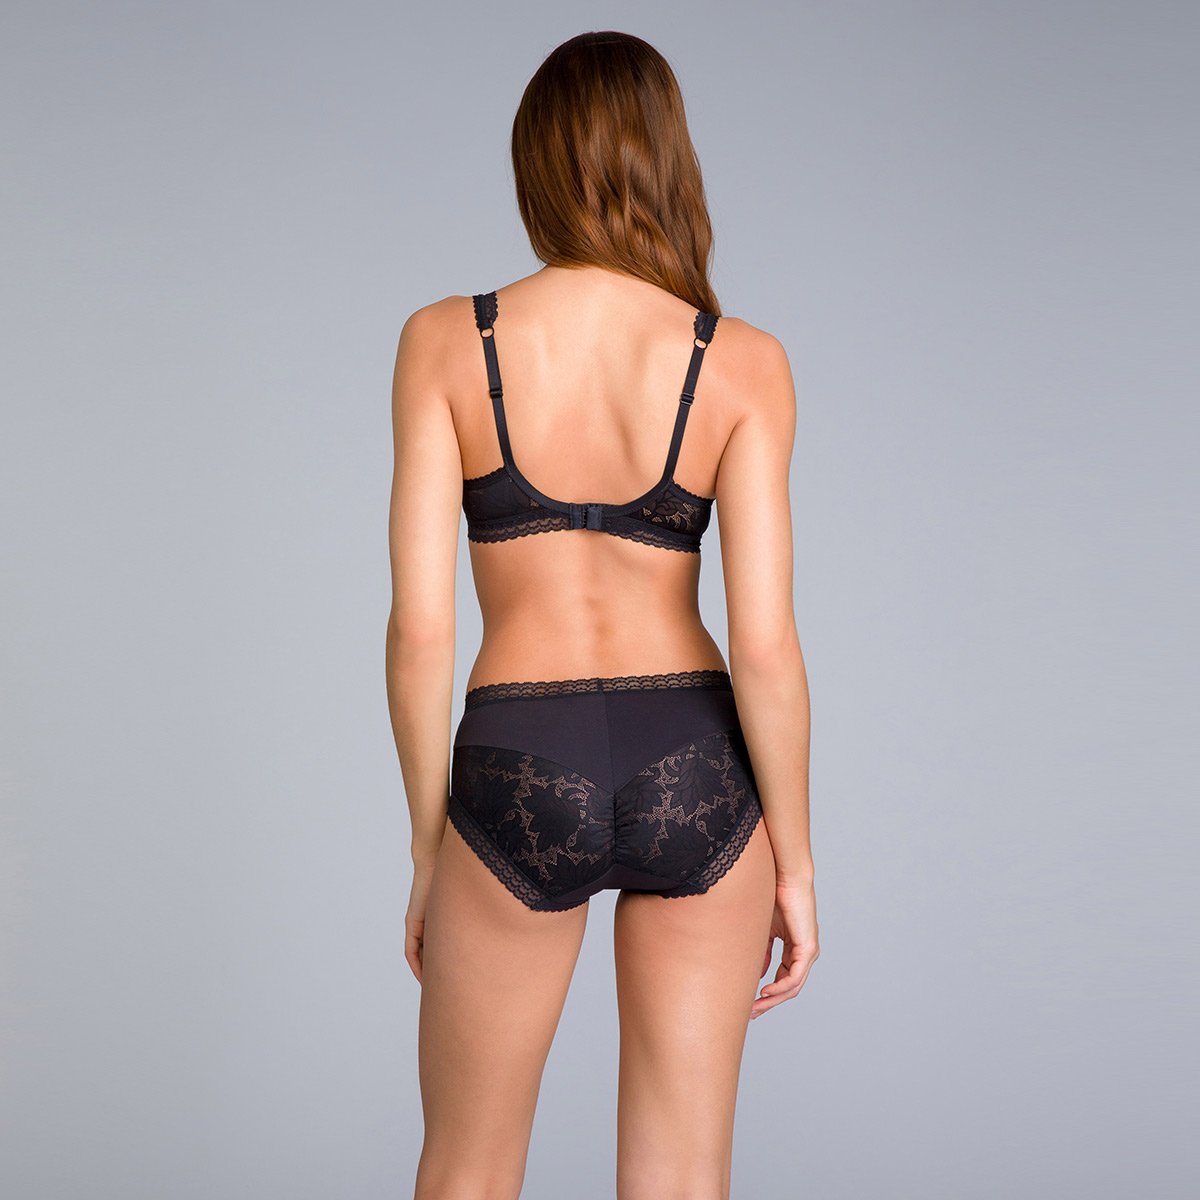 Midi Knickers in Black Lace - Invisible Elegance - PLAYTEX